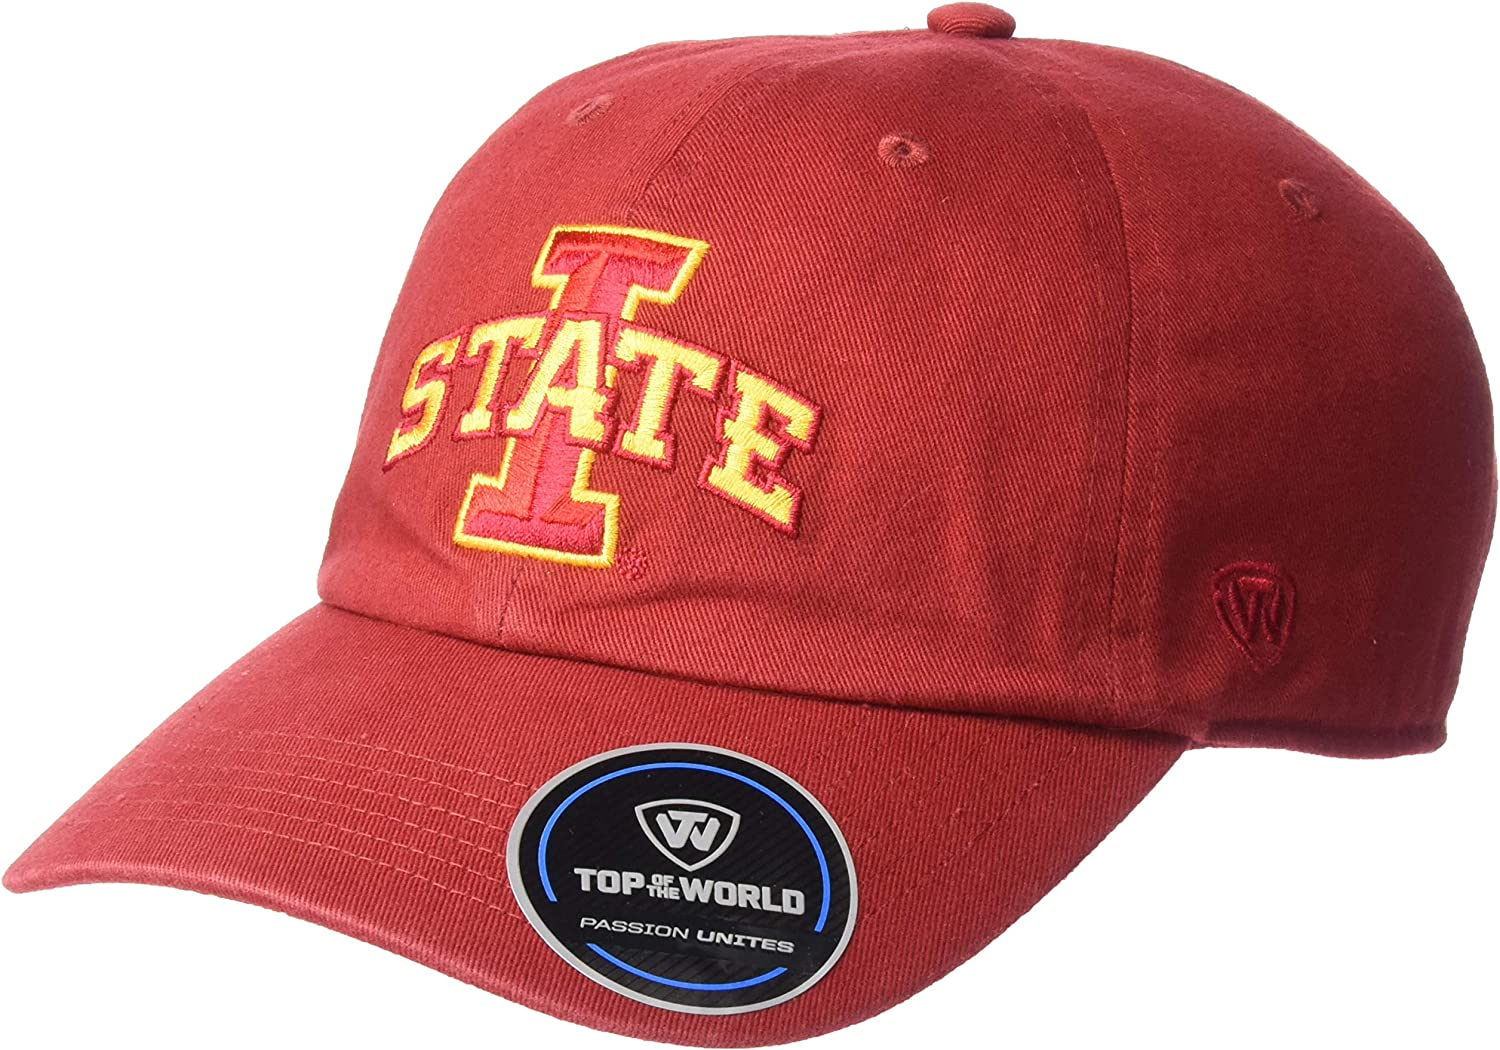 Top of the World NCAA Mens Hat Adjustable Relaxed Fit Team Icon